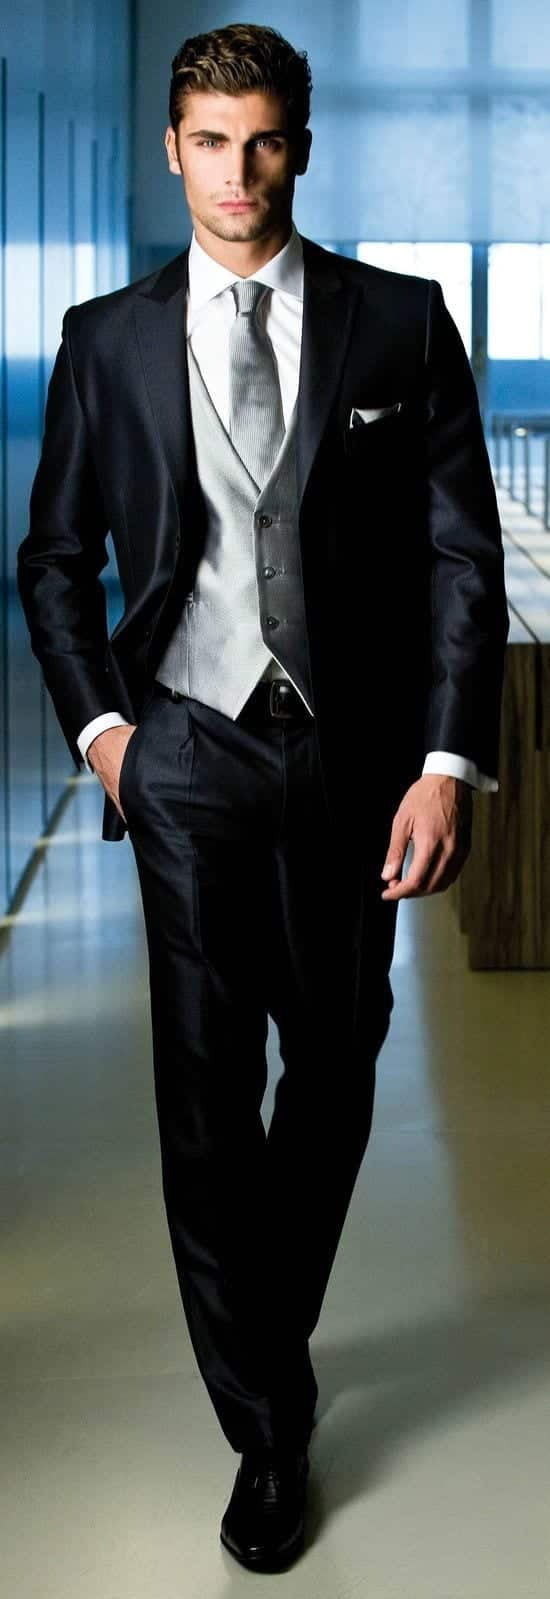 7 Top 10 Men Formal Shoes Styles And Ideas How to Wear them.